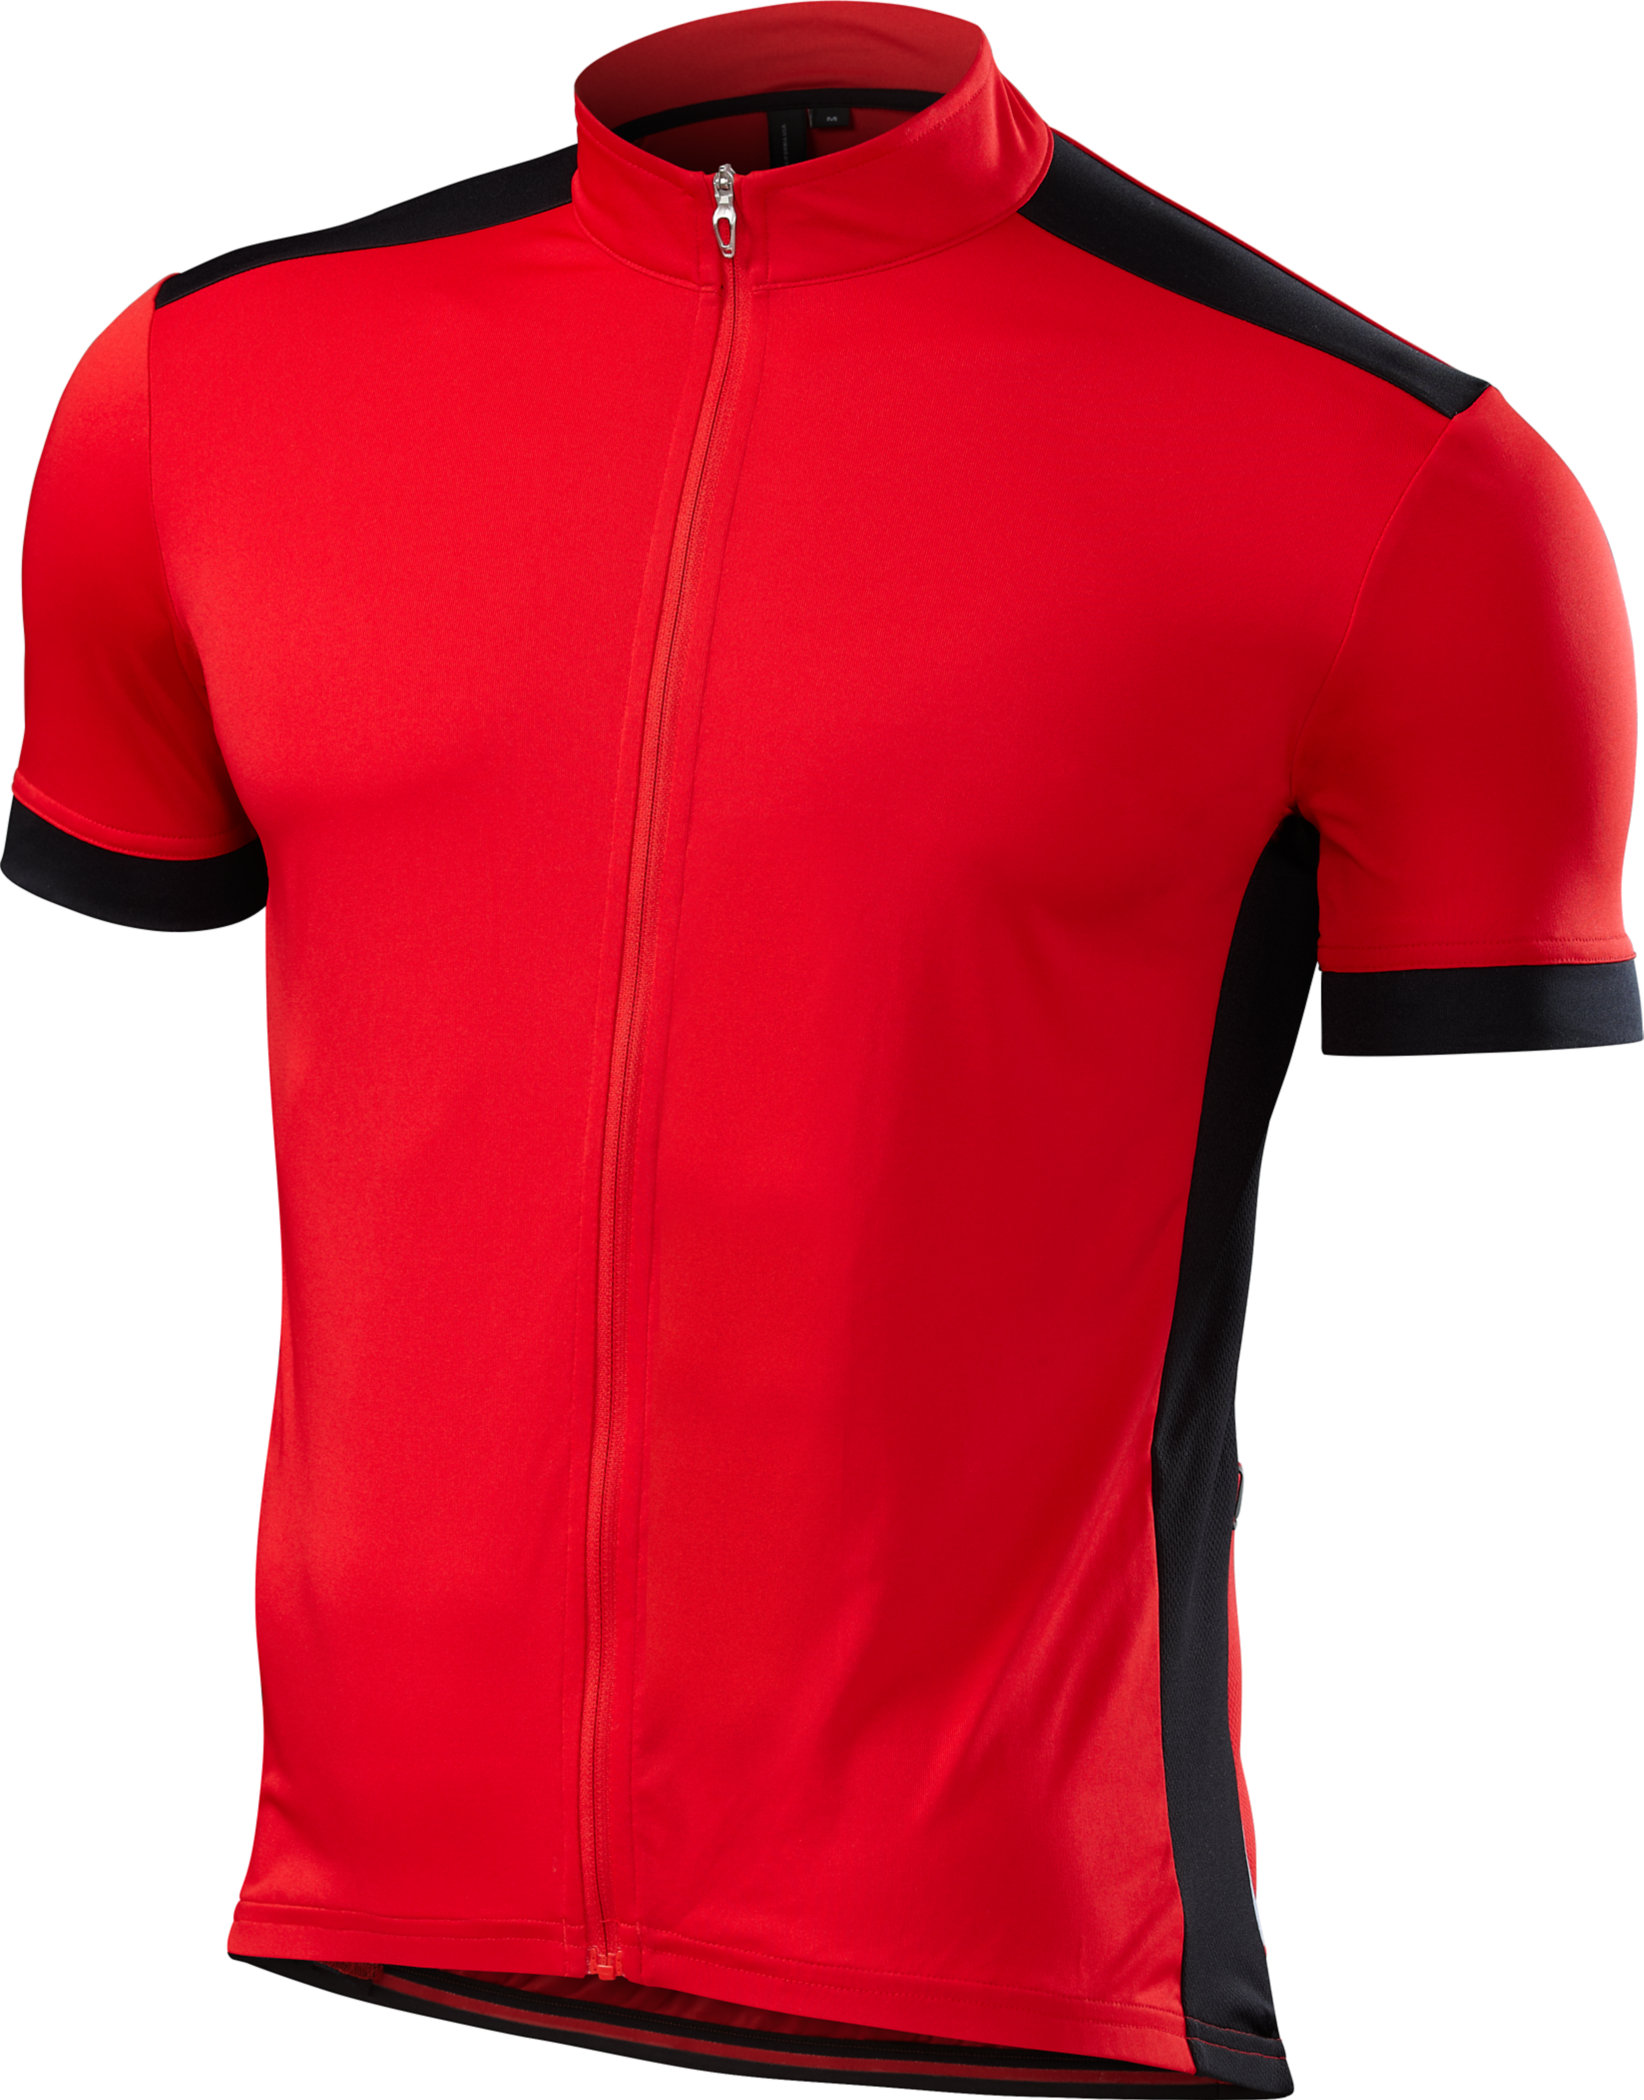 Specialized RBX Sport Jersey Red/Black Large - Alpha Bikes